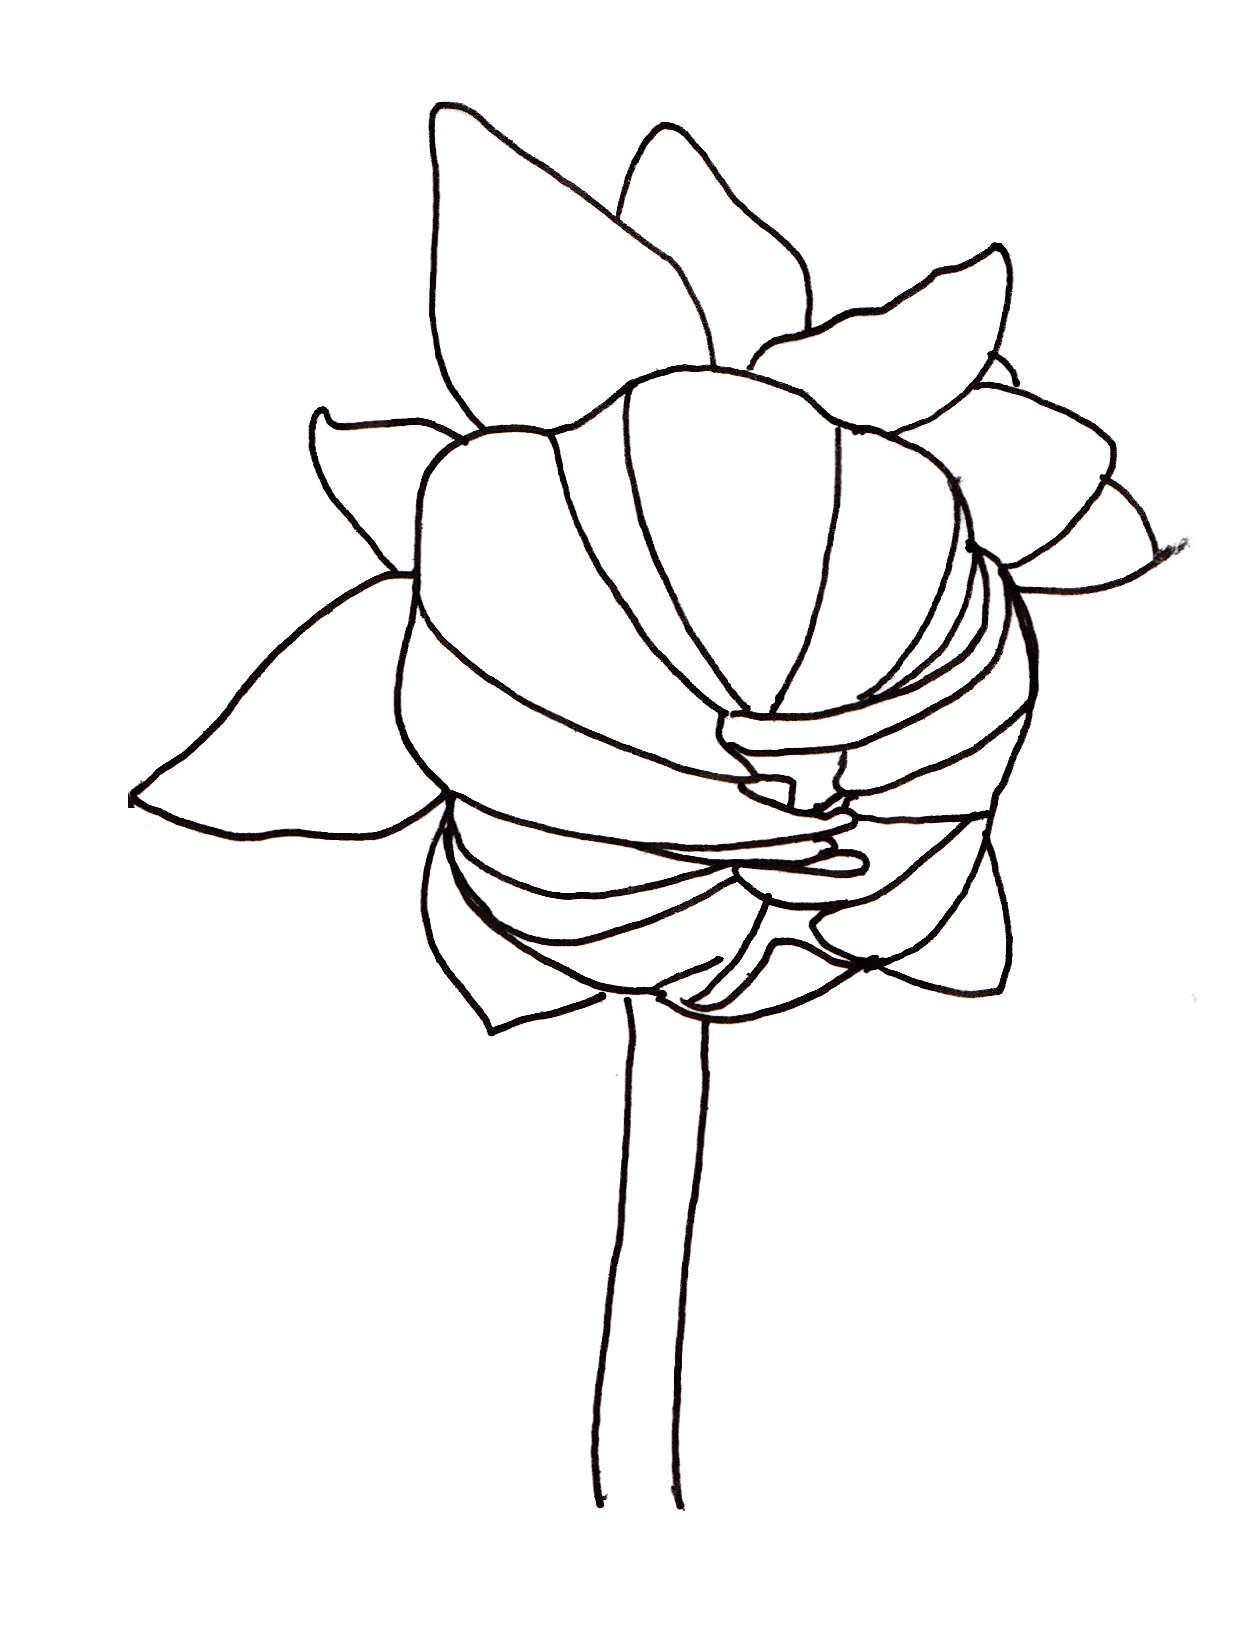 Dahlia Flower Line Drawing : Line drawing closed dahlia drawings pinterest